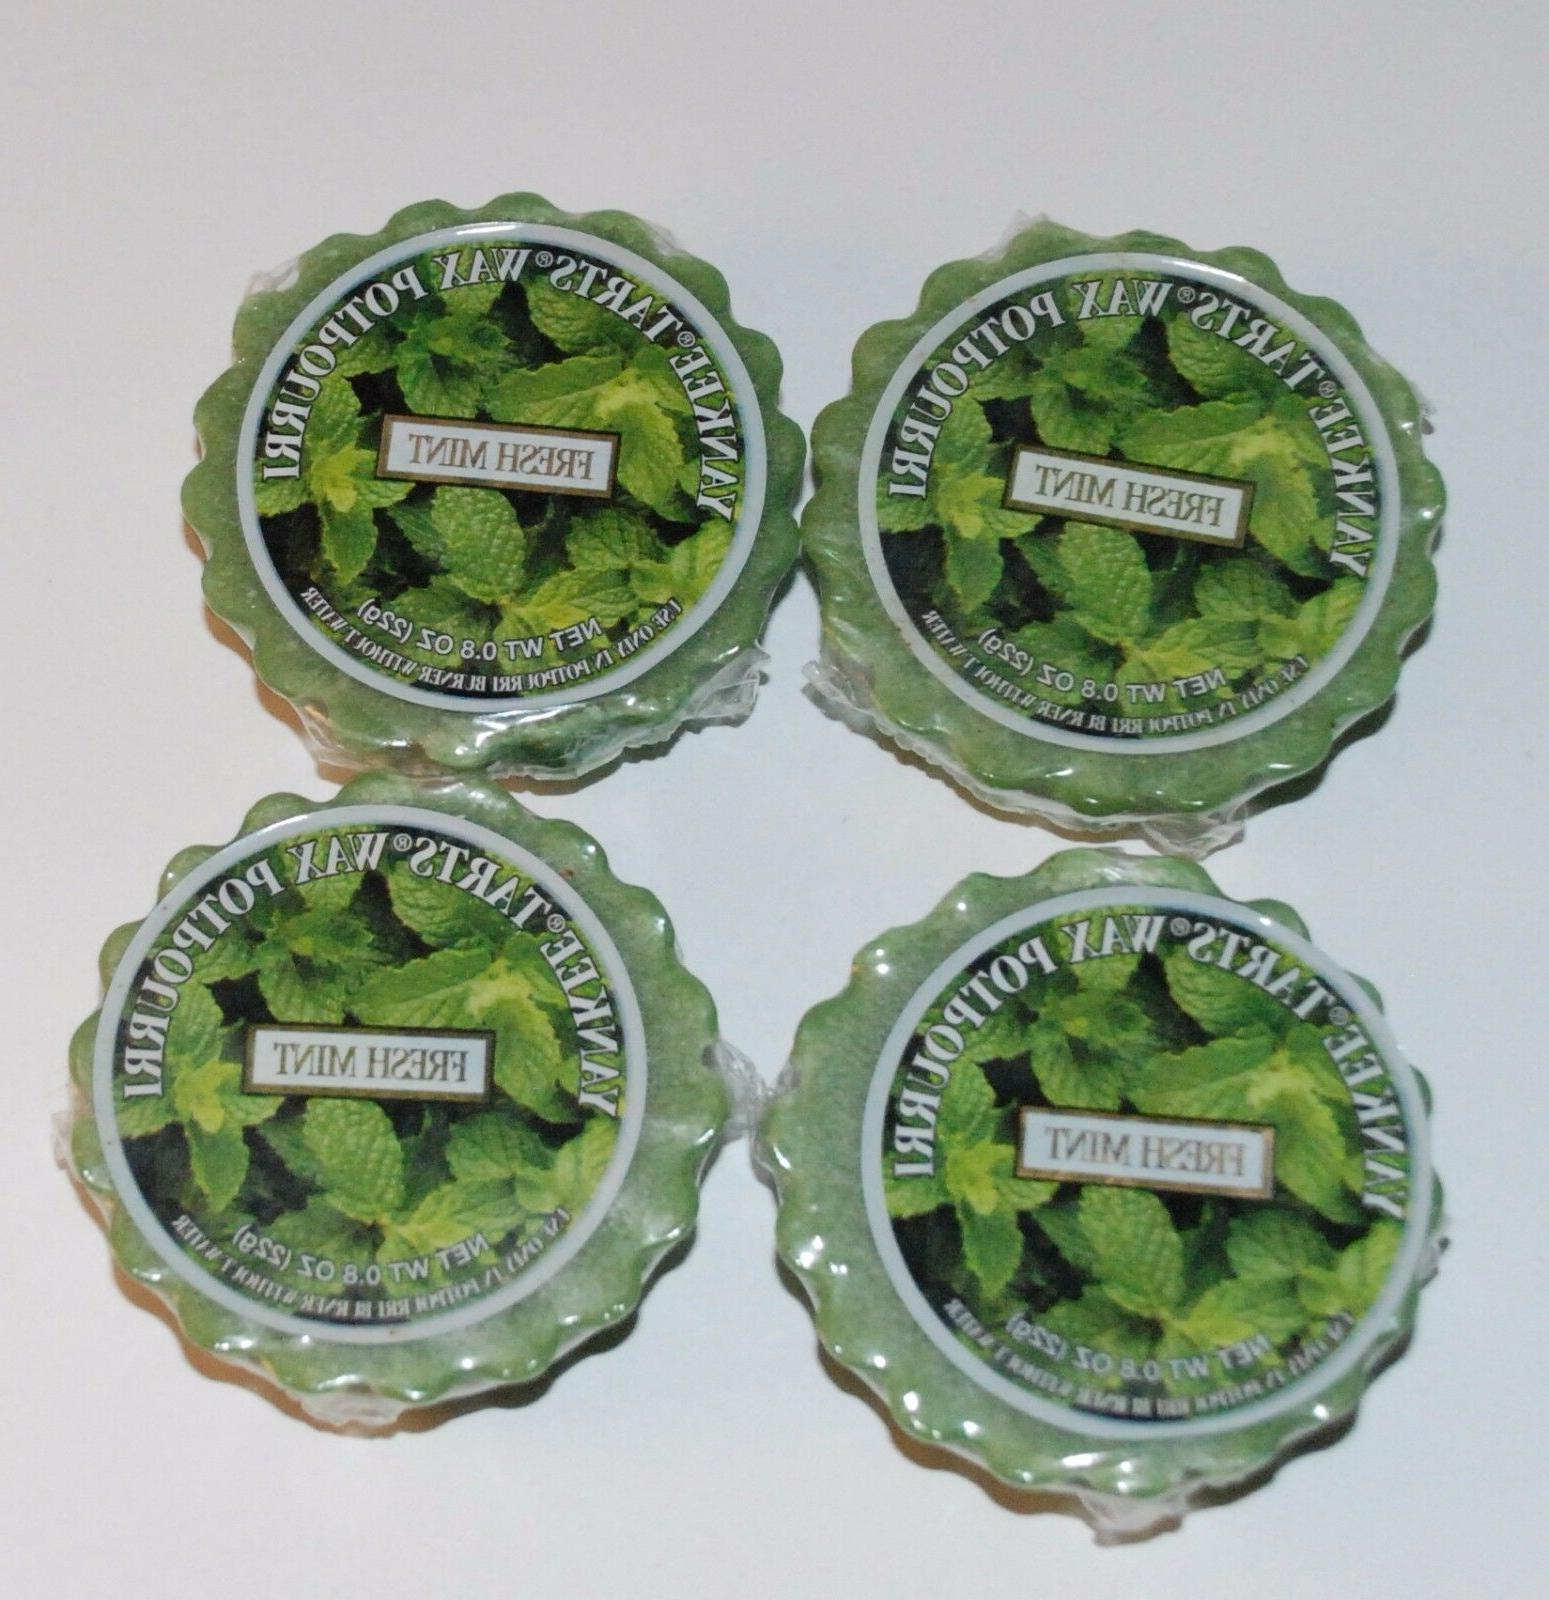 LOT OF 4 YANKEE CANDLE TARTS FRESH MINT SCENTED WAX MELTS RO